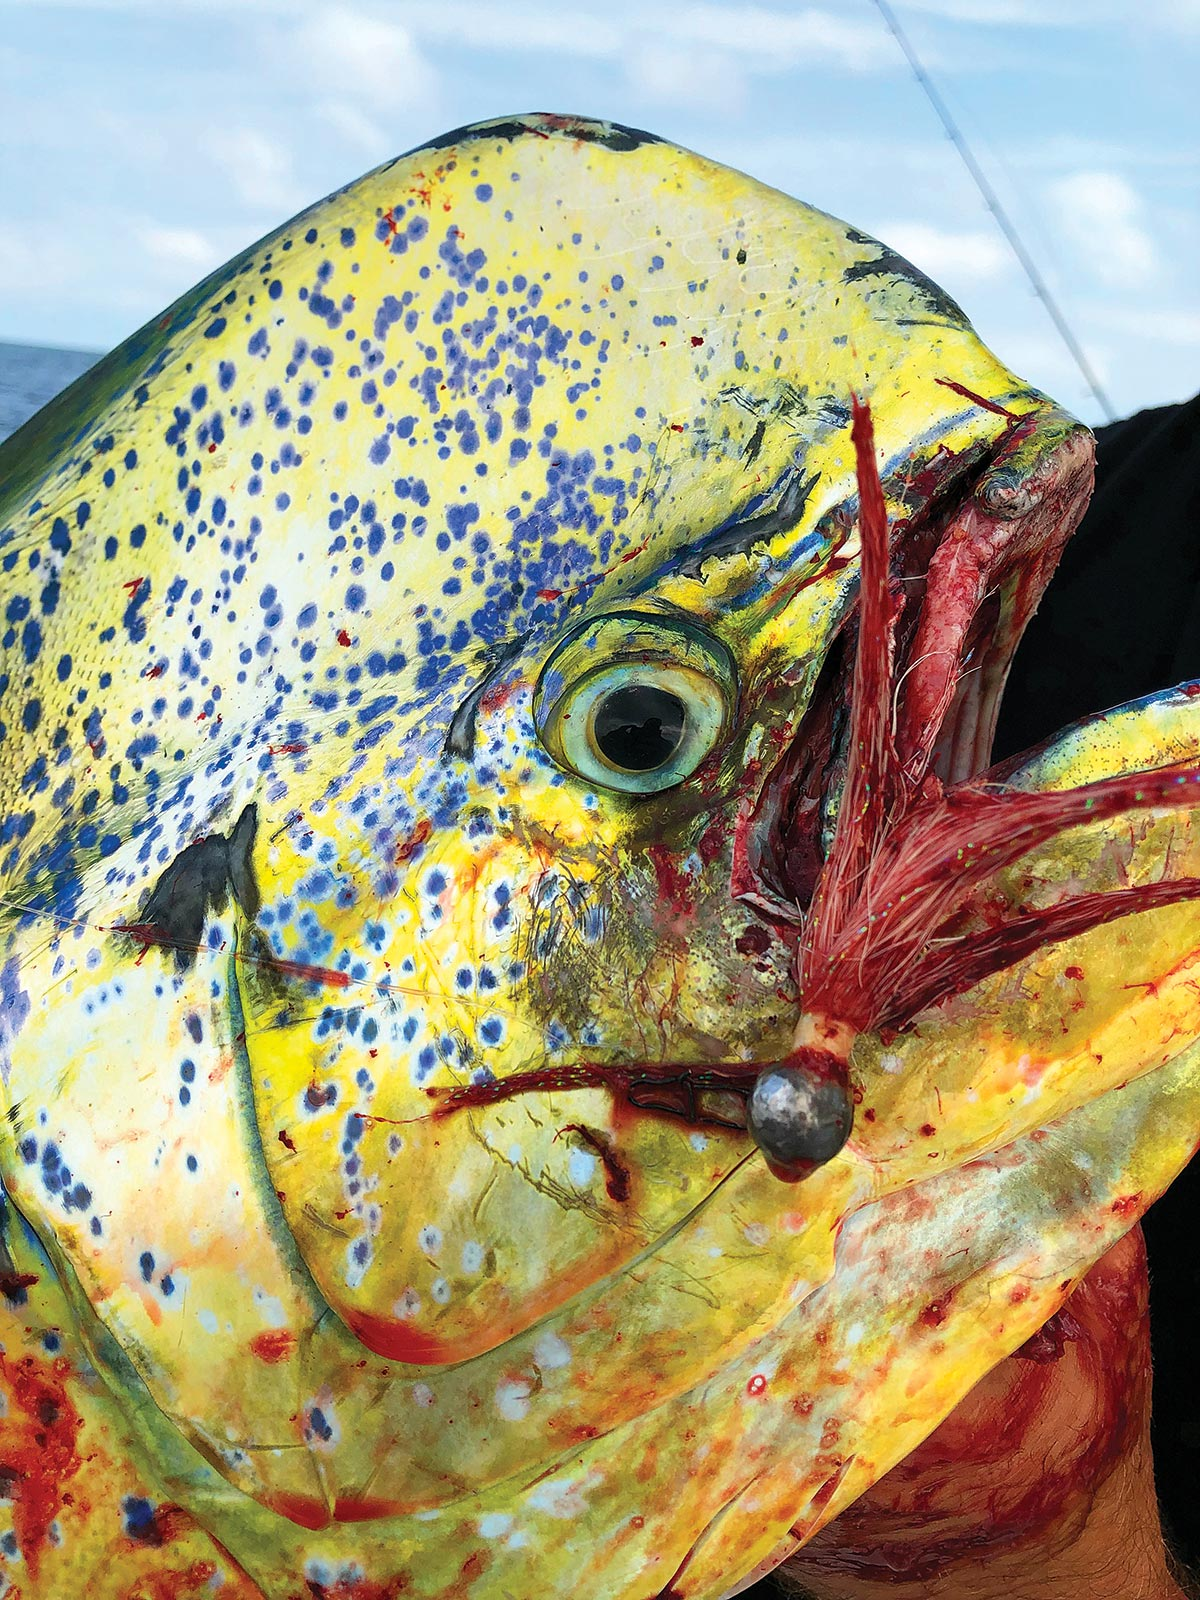 a bucktail of 3/8- to 1-ounce will work best to pull mahi off the pots